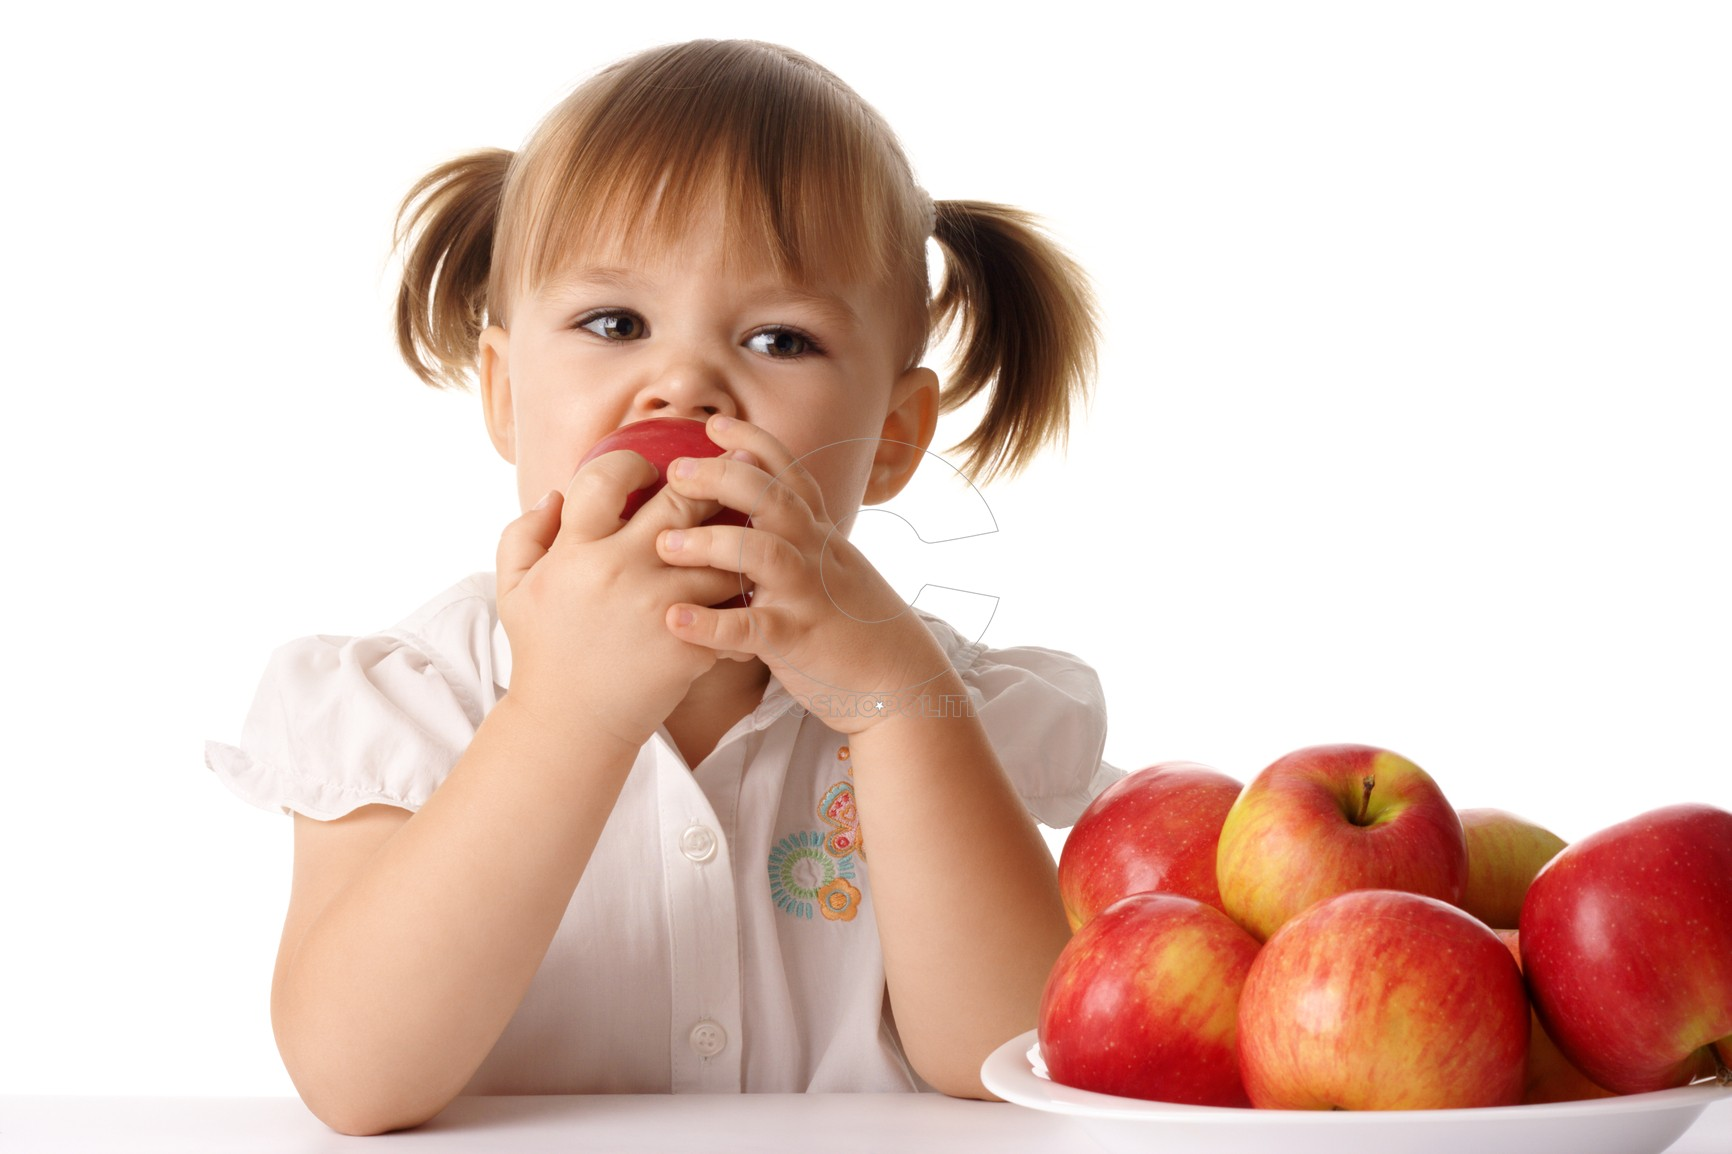 Cute child eats red apple, isolated over white